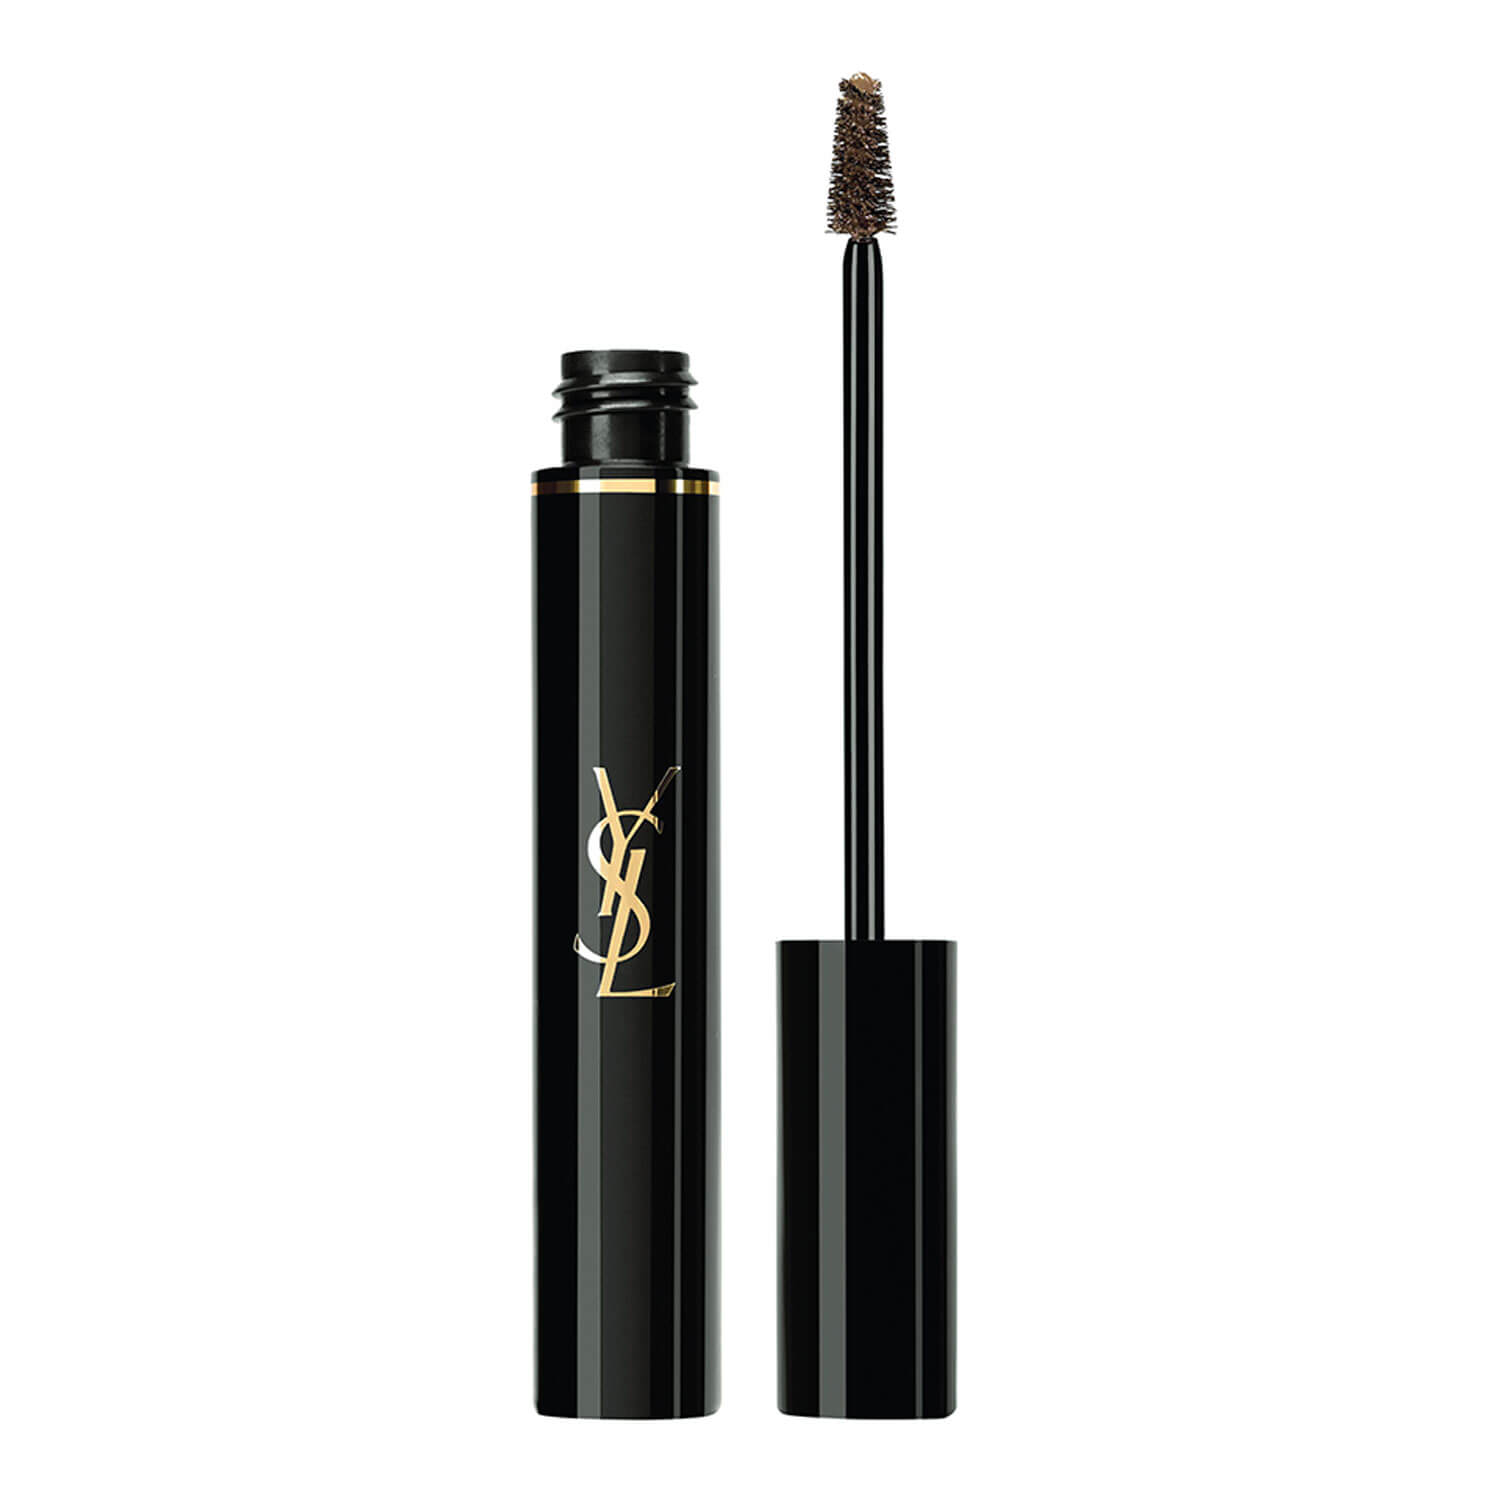 Couture Brow - Blond Cendré 02 - 7.5ml